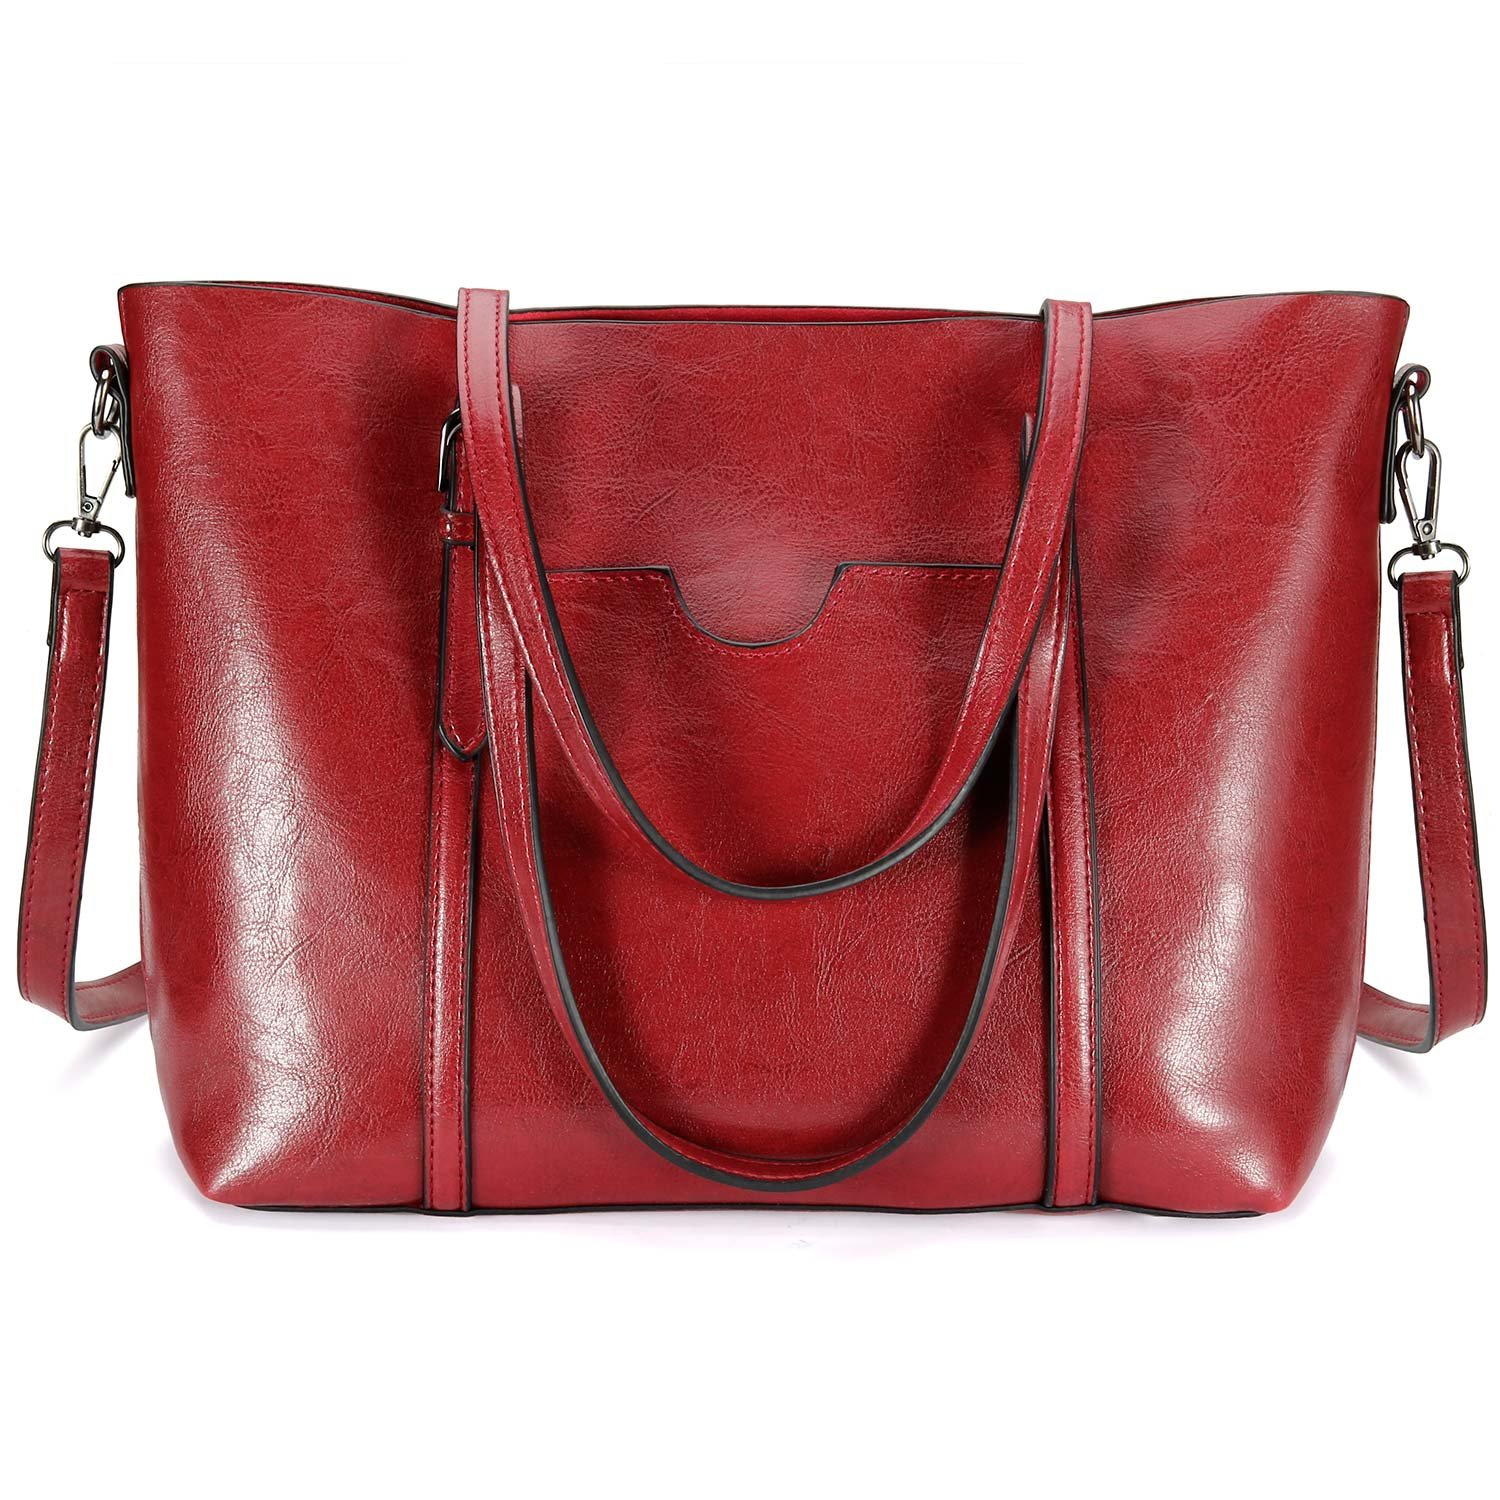 Handbags are nice gift ideas for young women